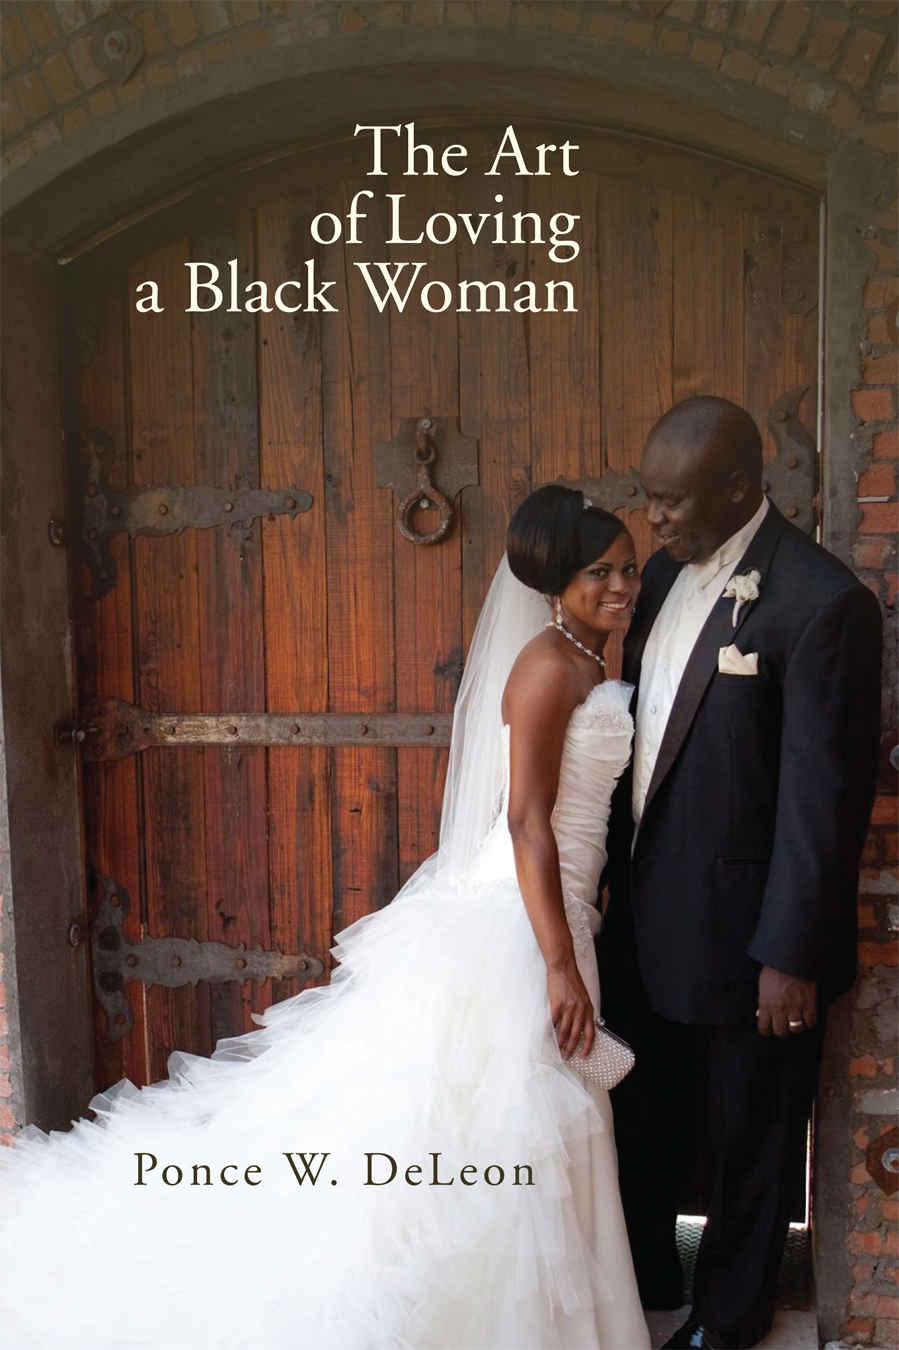 The Art of Loving a Black Woman